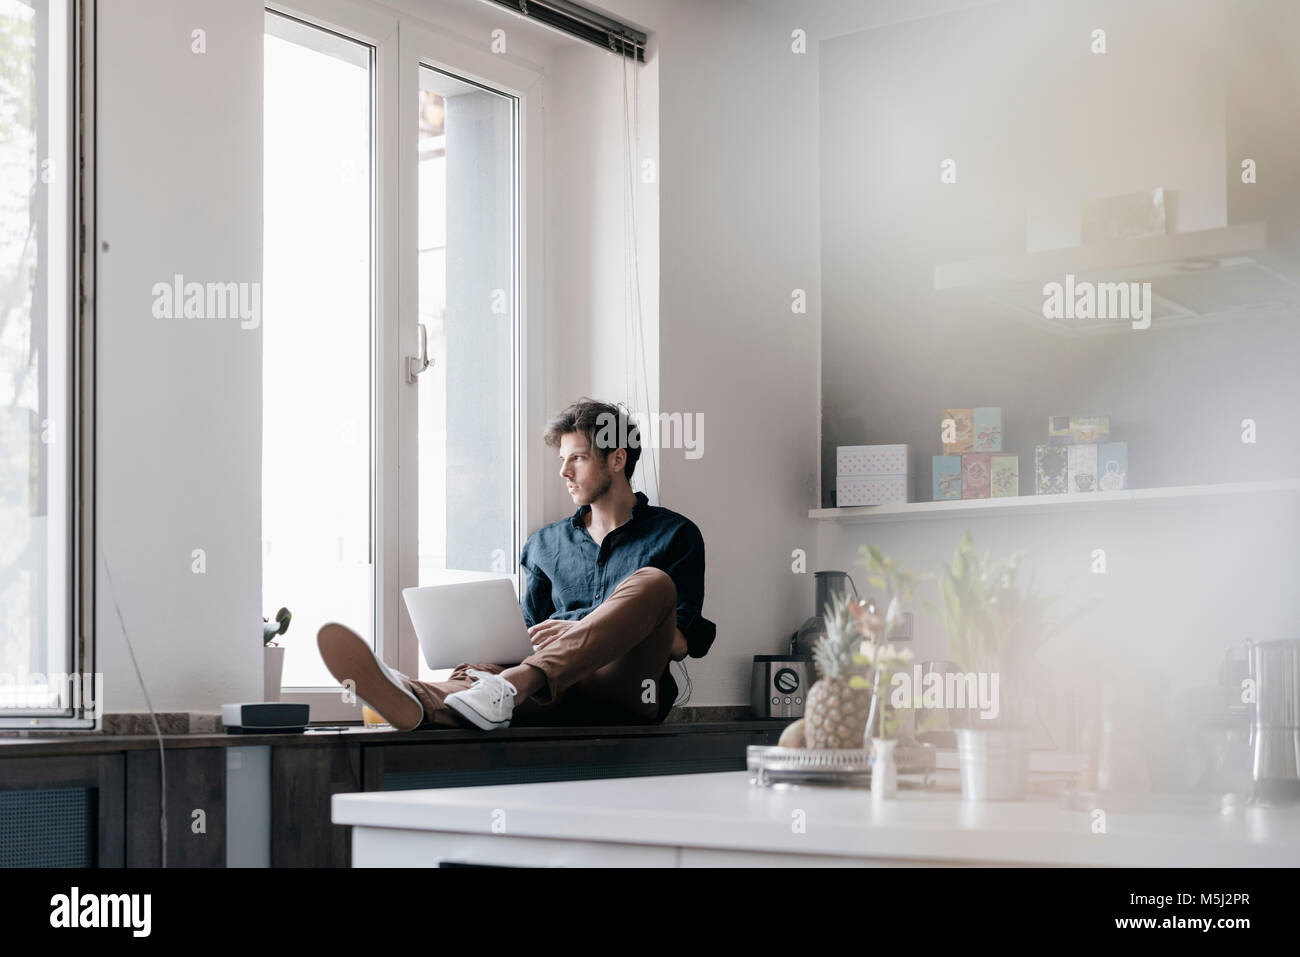 Young man with laptop sitting on window sill in a loft looking out of the window - Stock Image